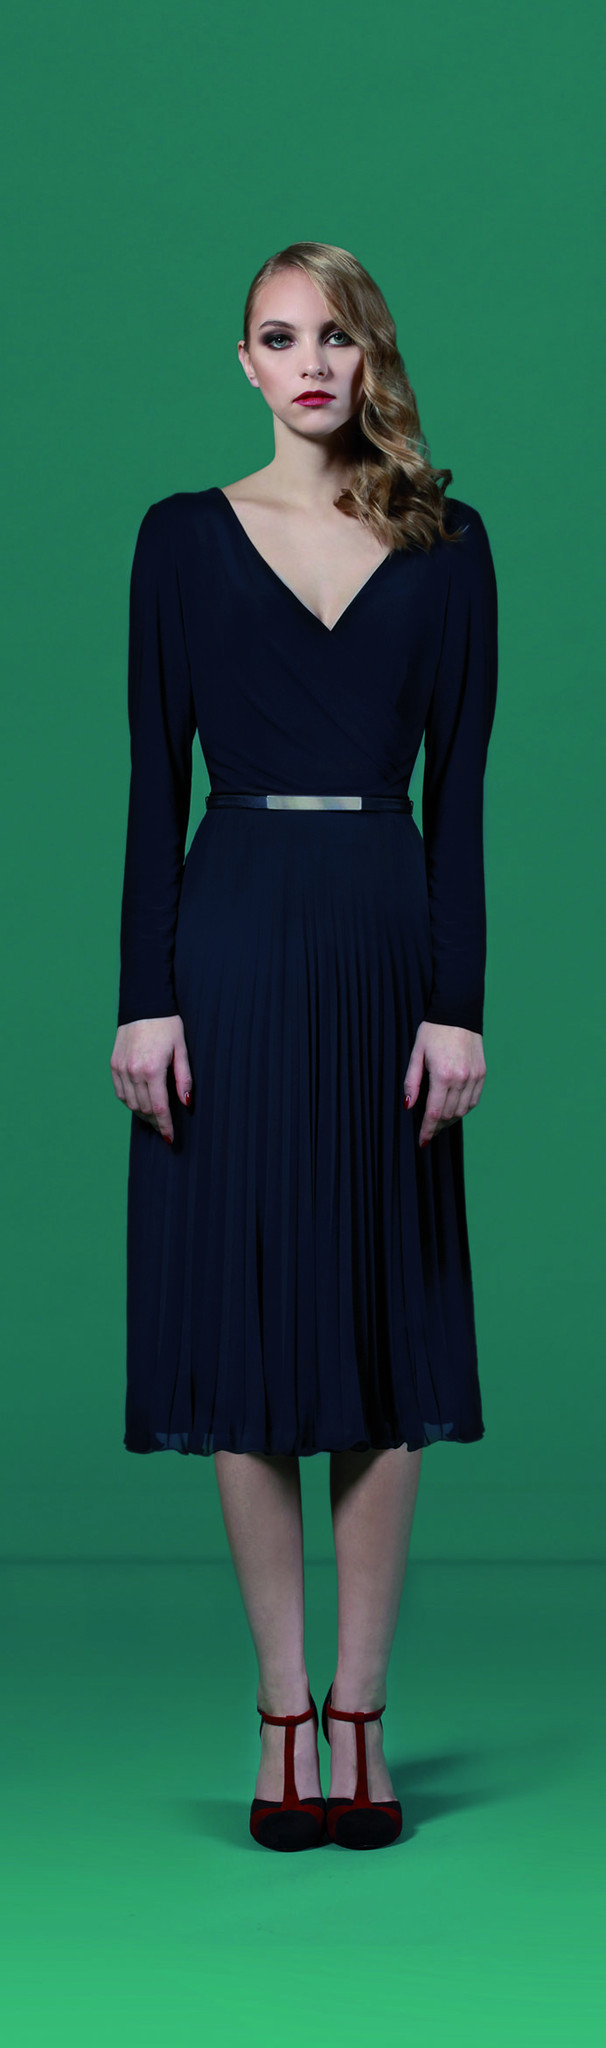 Navy Pleated Jersey Dress - style: faux wrap/wrap; length: below the knee; neckline: low v-neck; pattern: plain; waist detail: belted waist/tie at waist/drawstring; predominant colour: navy; occasions: evening; fit: body skimming; fibres: polyester/polyamide - stretch; hip detail: subtle/flattering hip detail; sleeve length: long sleeve; sleeve style: standard; pattern type: fabric; texture group: jersey - stretchy/drapey; season: a/w 2015; wardrobe: event